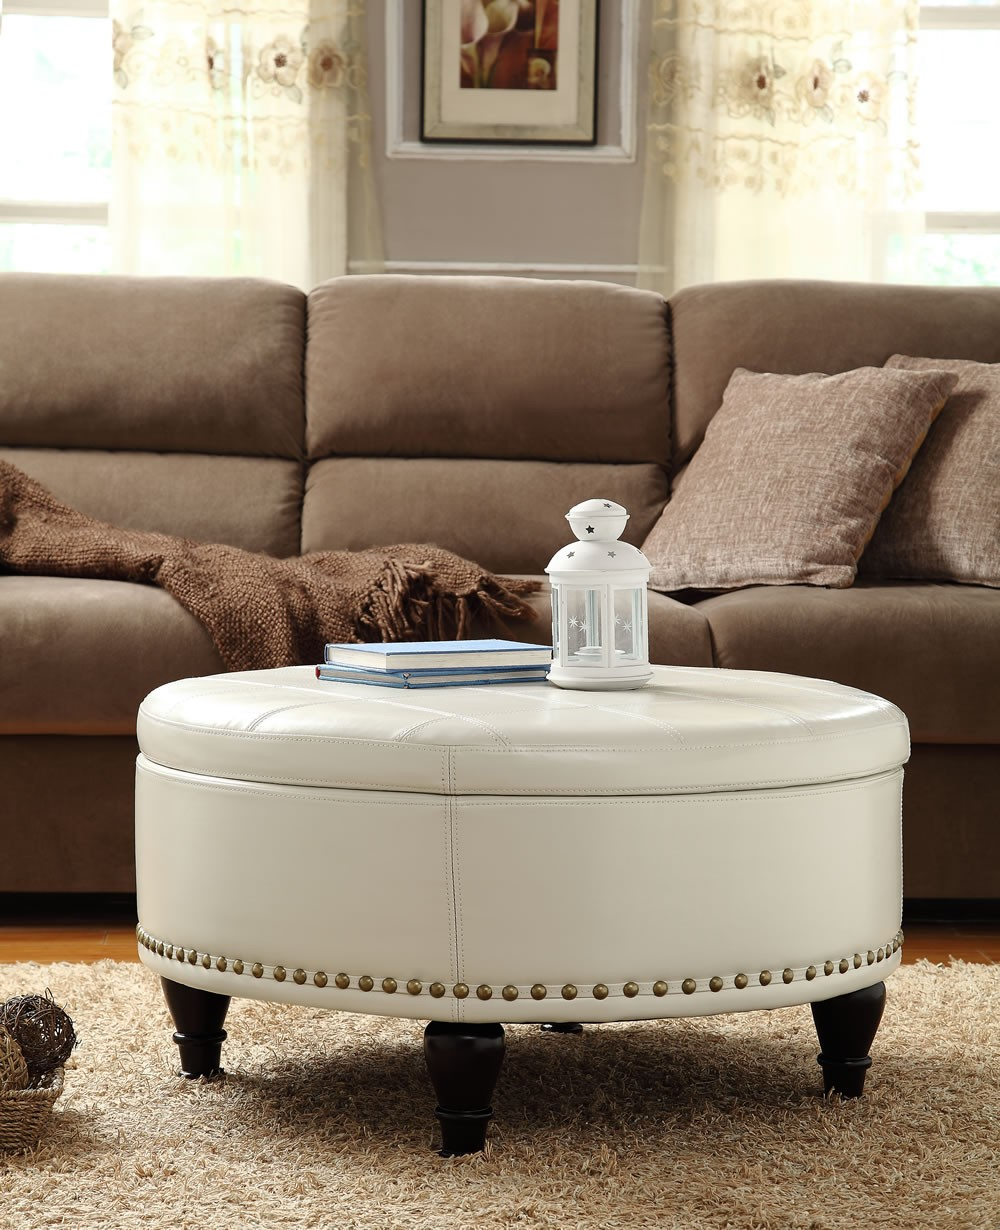 Beautiful Coffee Table Ottoman Sets For Living Room Round Upholstered Ottoman Coffee Table Mesmerizing Living Room With White Round Ottoman 1 (Image 1 of 10)